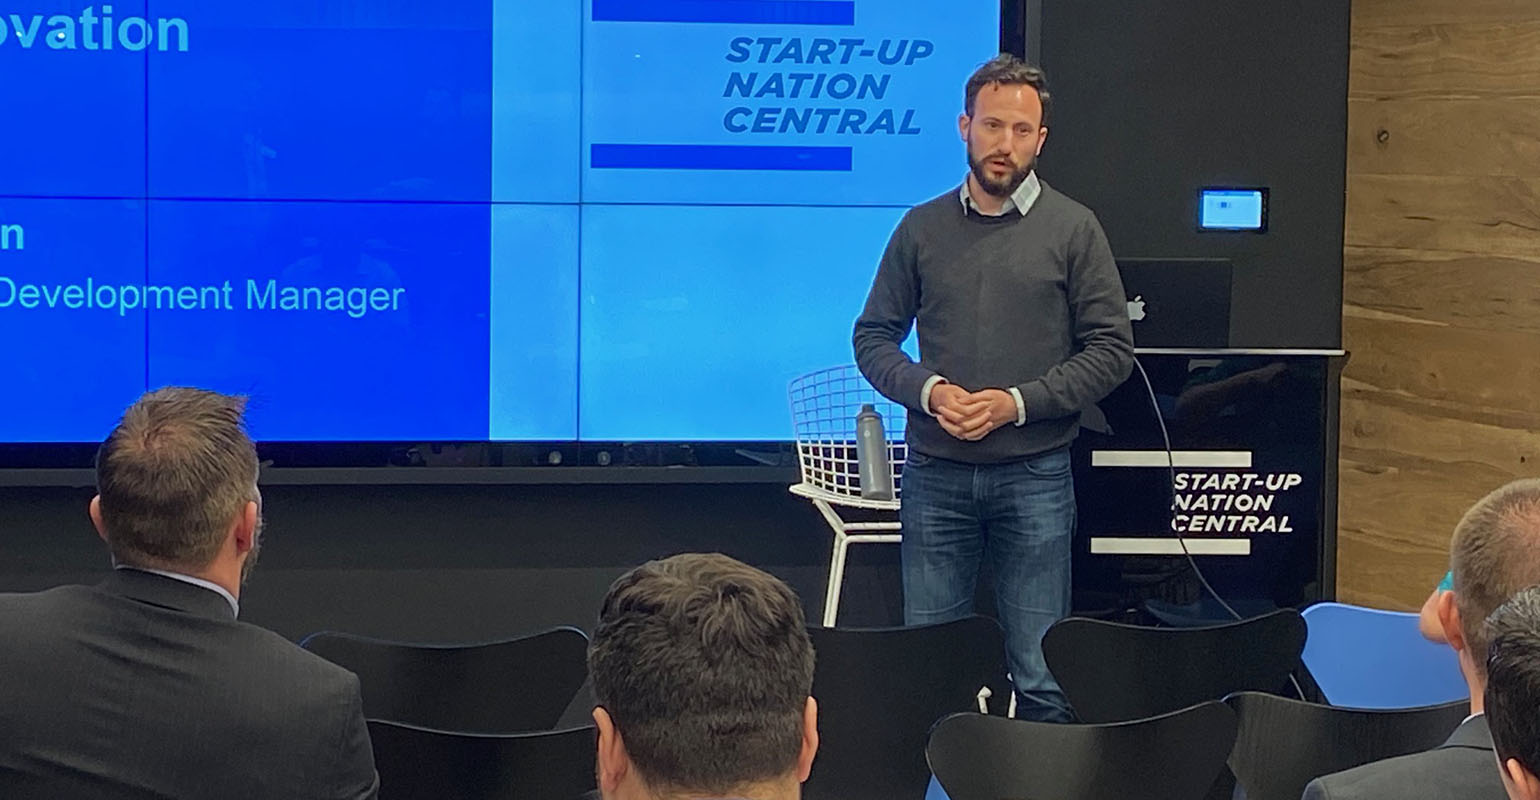 Ben Yuron, Business Development Manager of Start-Up Nation Central, briefs IALP fellows on new initiatives and business creation at their headquarters in Tel Aviv.